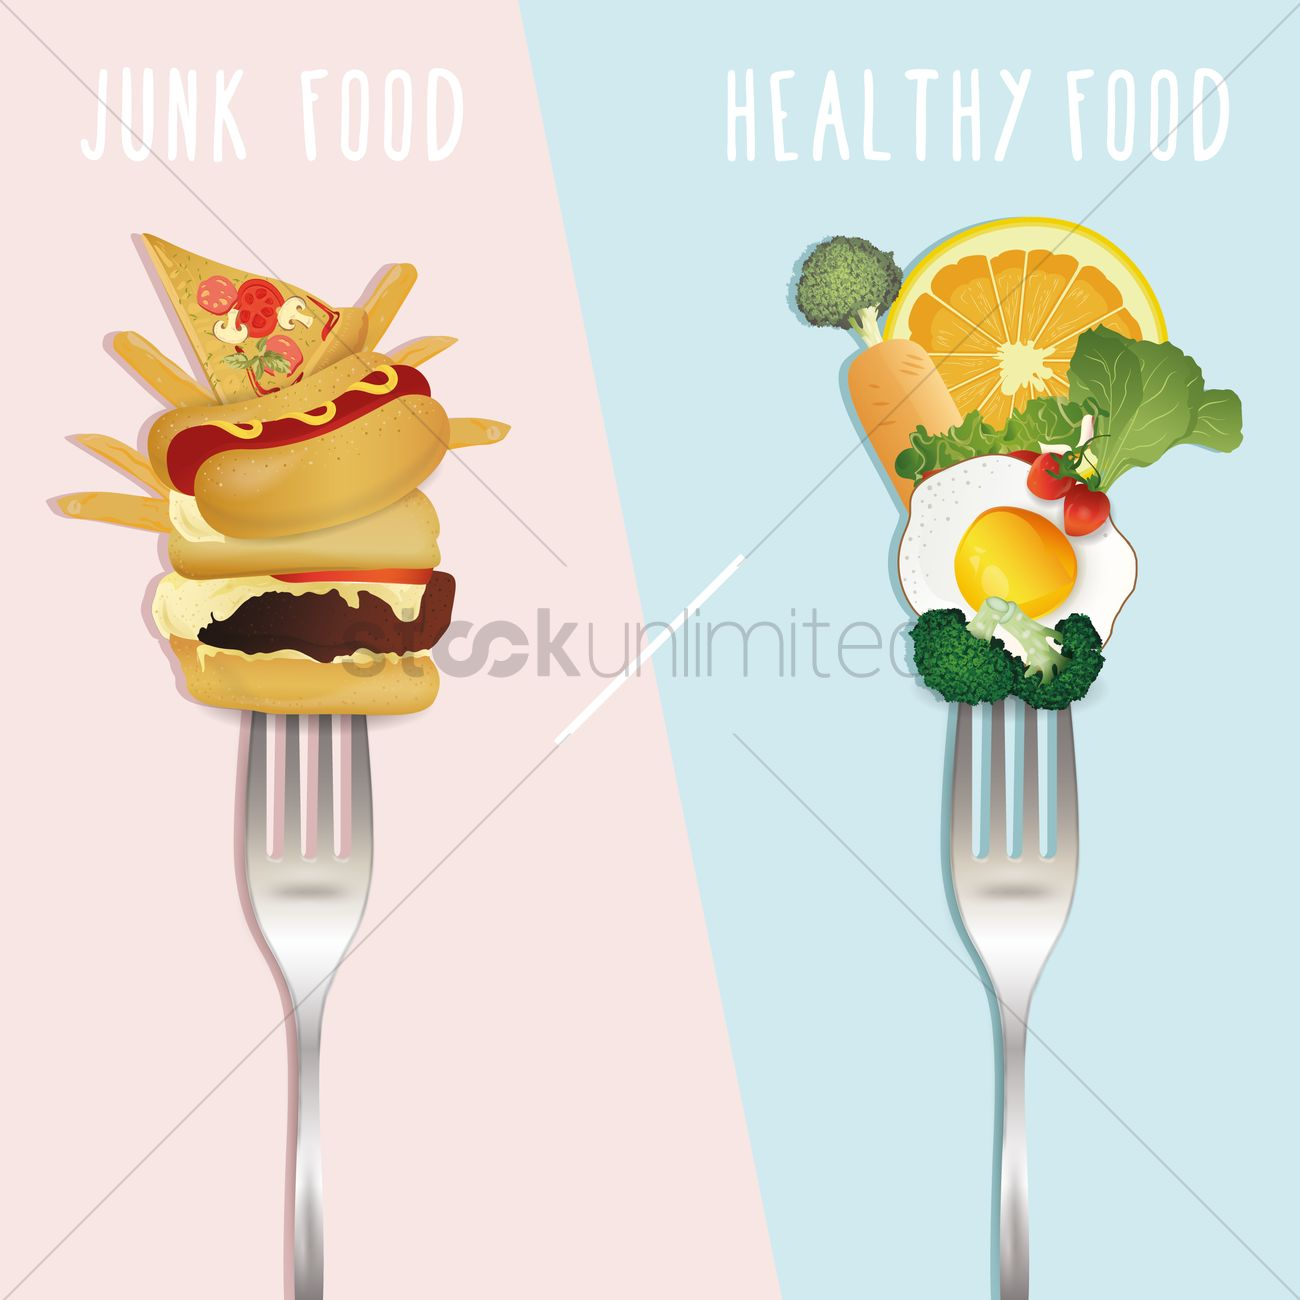 Healthy Food Versus Junk Food Design Vector Image